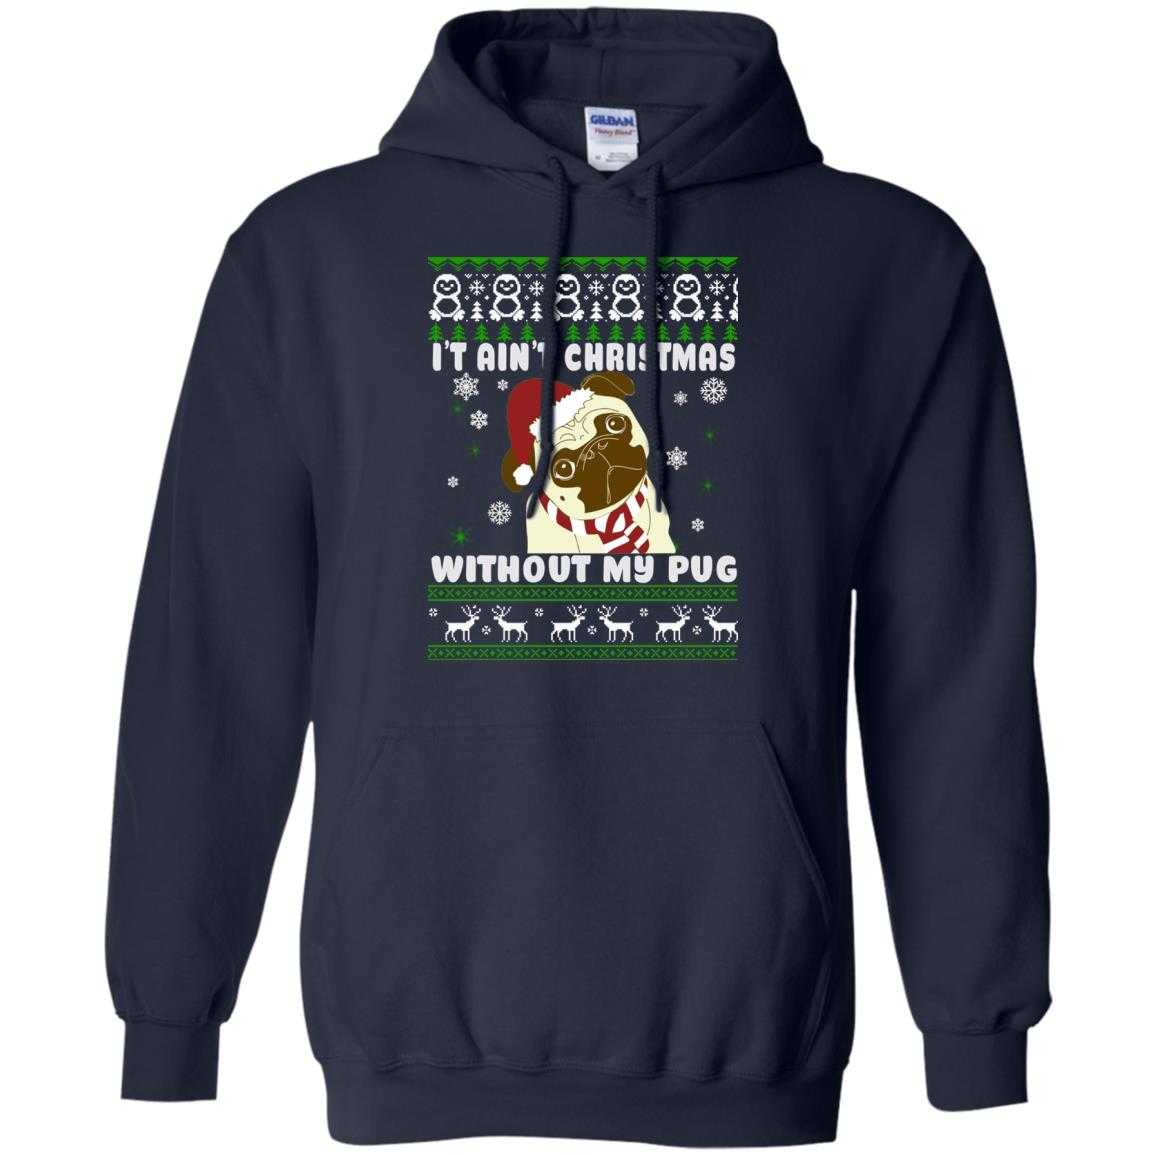 This is my ugly christmas sweater Unisex Hoodie is designed by Aibek and printed in U.S. Available in many colors and sizes. Shipped in days. Buy this item at Customon - Custom t-shirt printing company! This is my ugly christmas sweater Unisex Hoodie is designed by Aibek and printed in U.S. Available in many colors and sizes.